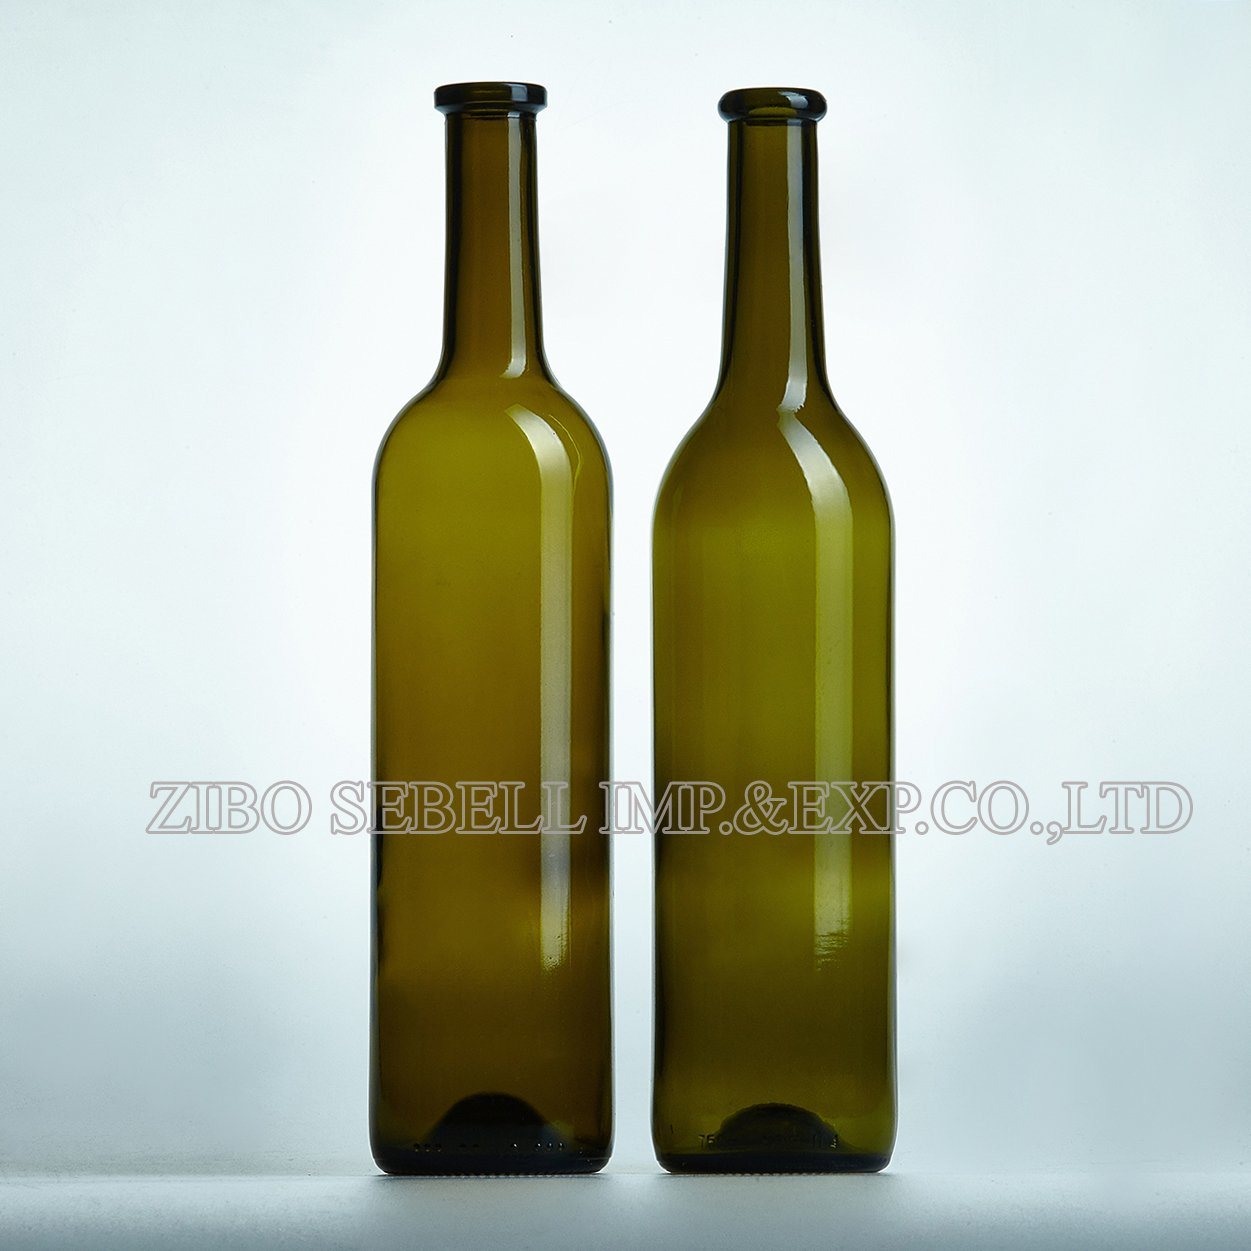 750ml Wine Glass Bottle with Cork Top in Bordeaux Design (NA-014)